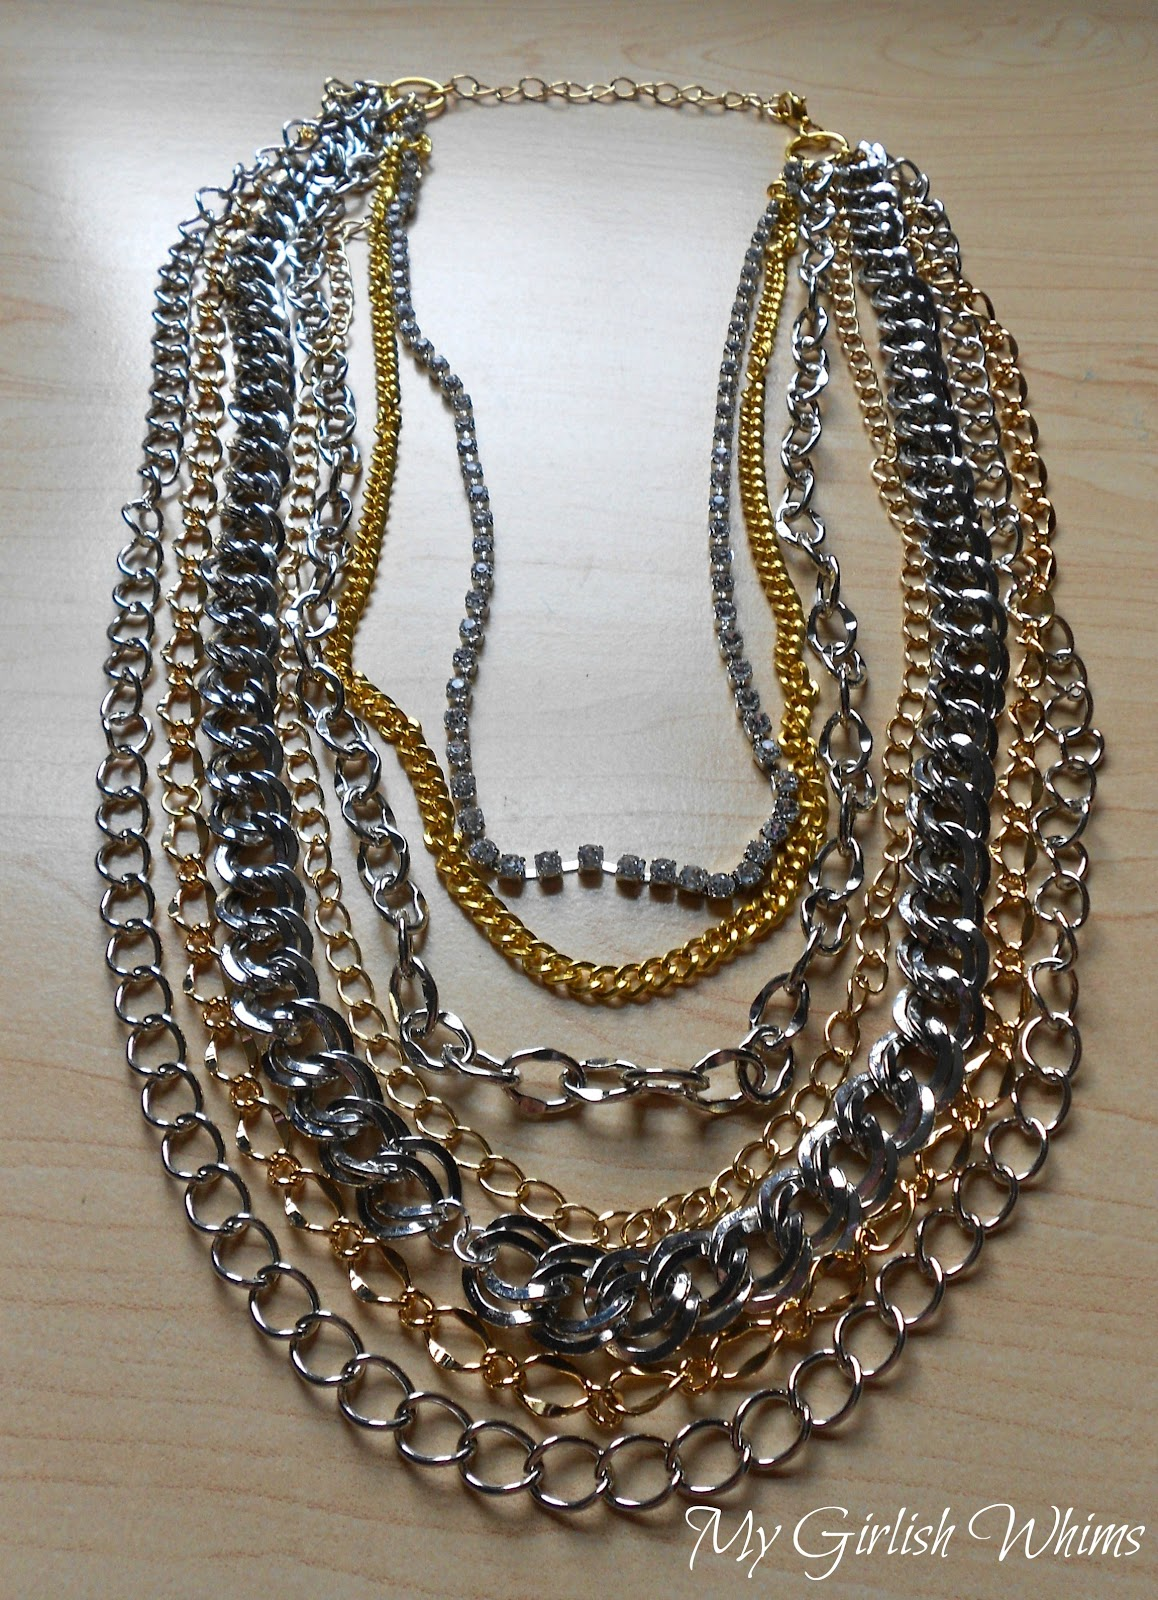 Chain Knock-Off Necklace - My Girlish Whims